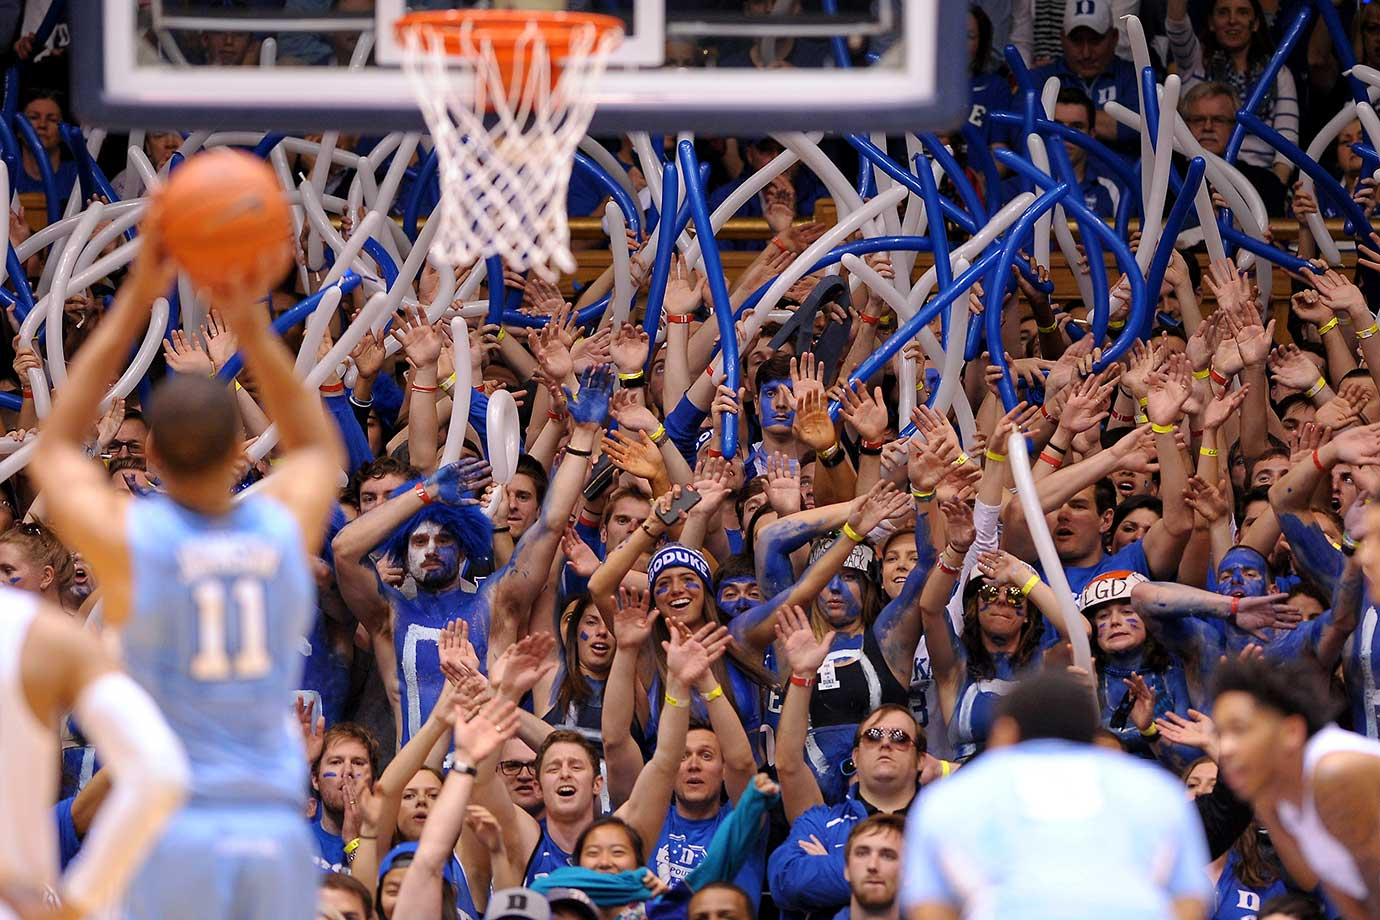 Cameron Crazies and fans of the Duke Blue Devils try to distract Brice Johnson of North Carolina.